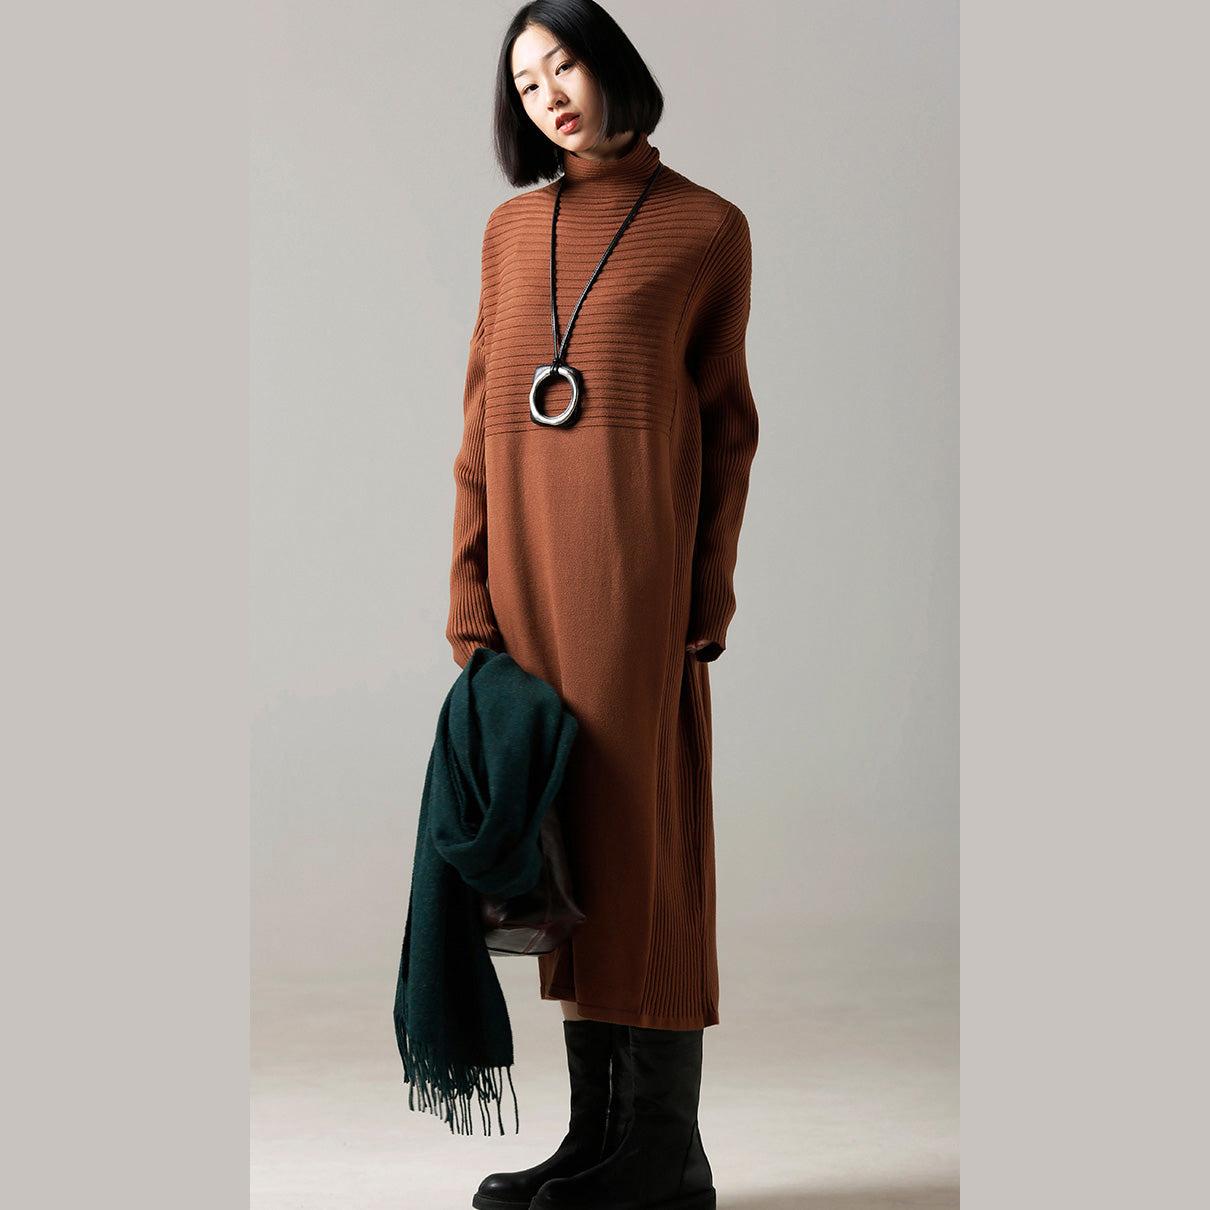 47edae1bb0 ... Fashion Sweater dress outfit Classy high neck wrinkled brown Mujer knit  dress ...